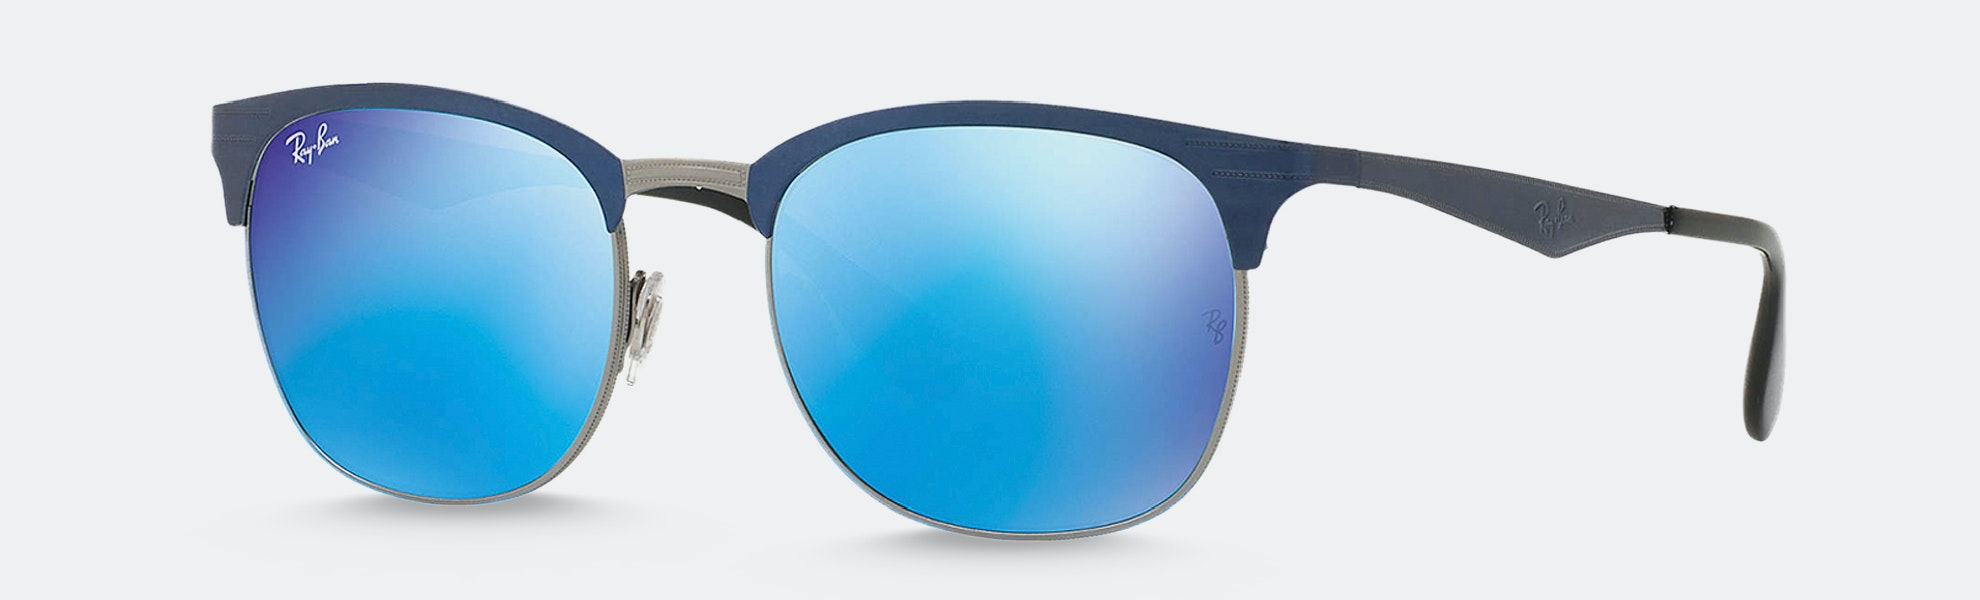 Ray-Ban RB3538 Sunglasses